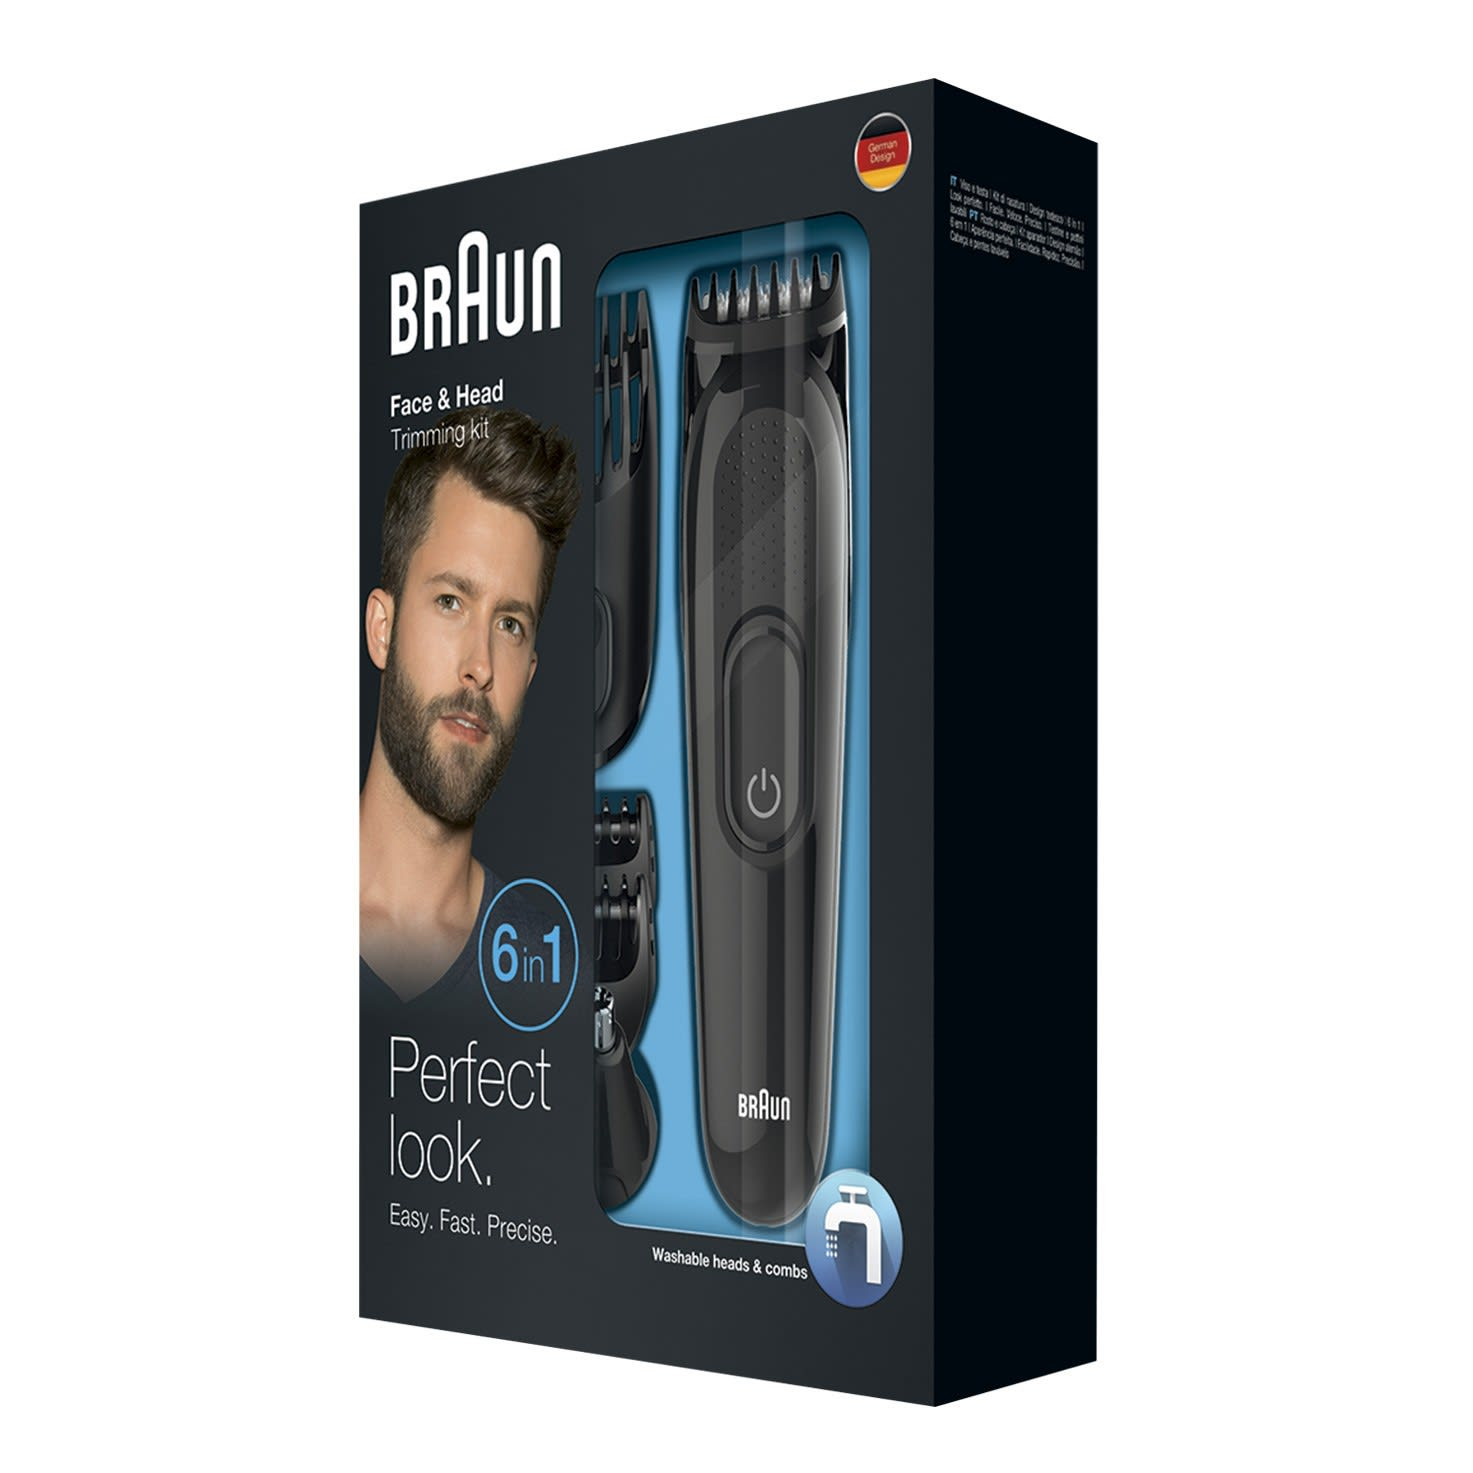 Braun multi grooming kit MGK3042 packaging